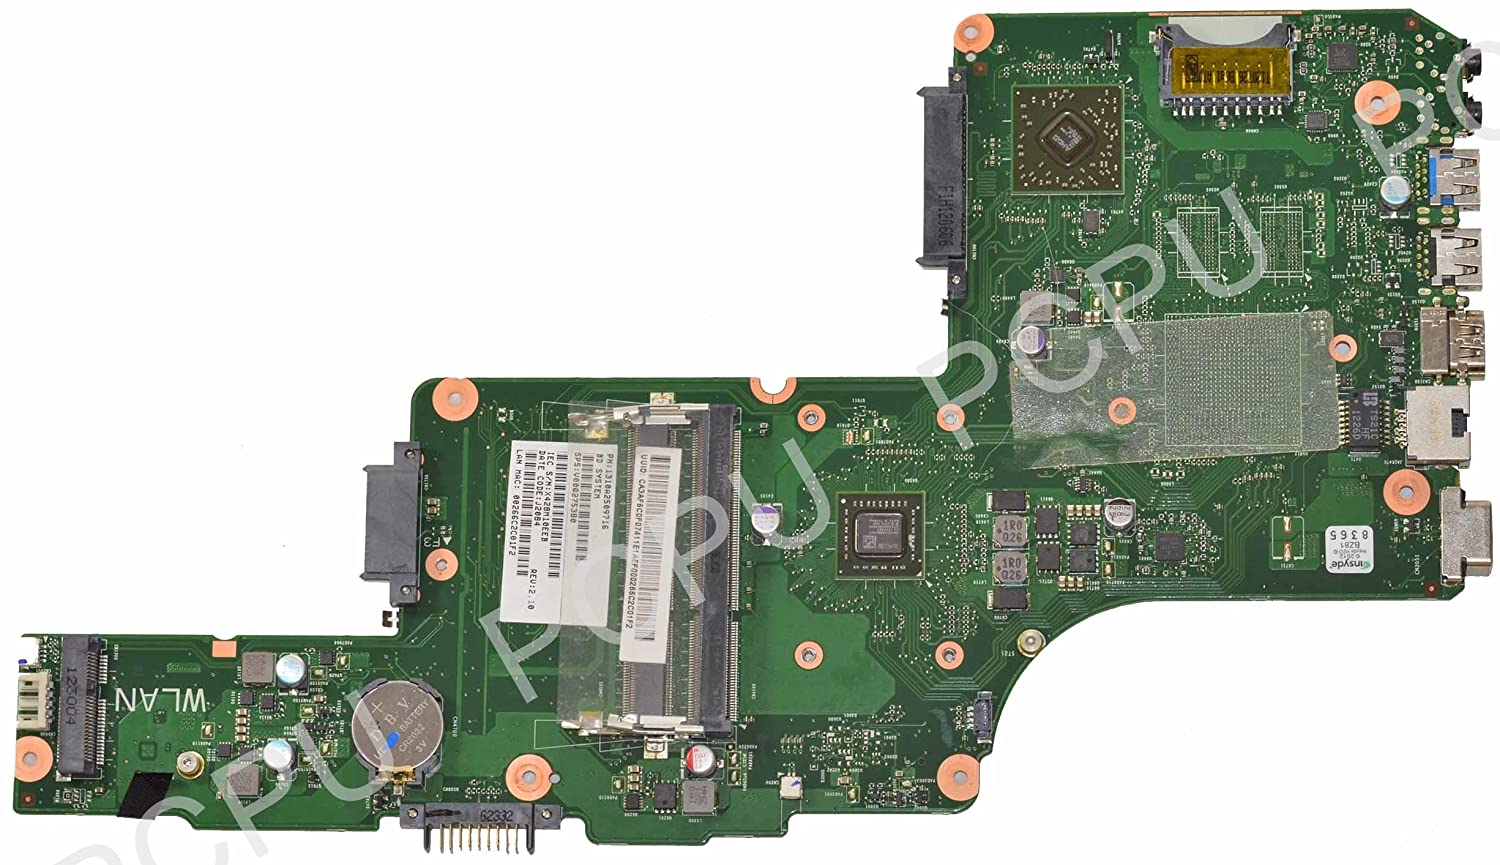 Amazon.com: V000275380 Toshiba Satellite C855D Laptop Motherboard w/ AMD E2- 1800 1.4Ghz CPU: Computers & Accessories